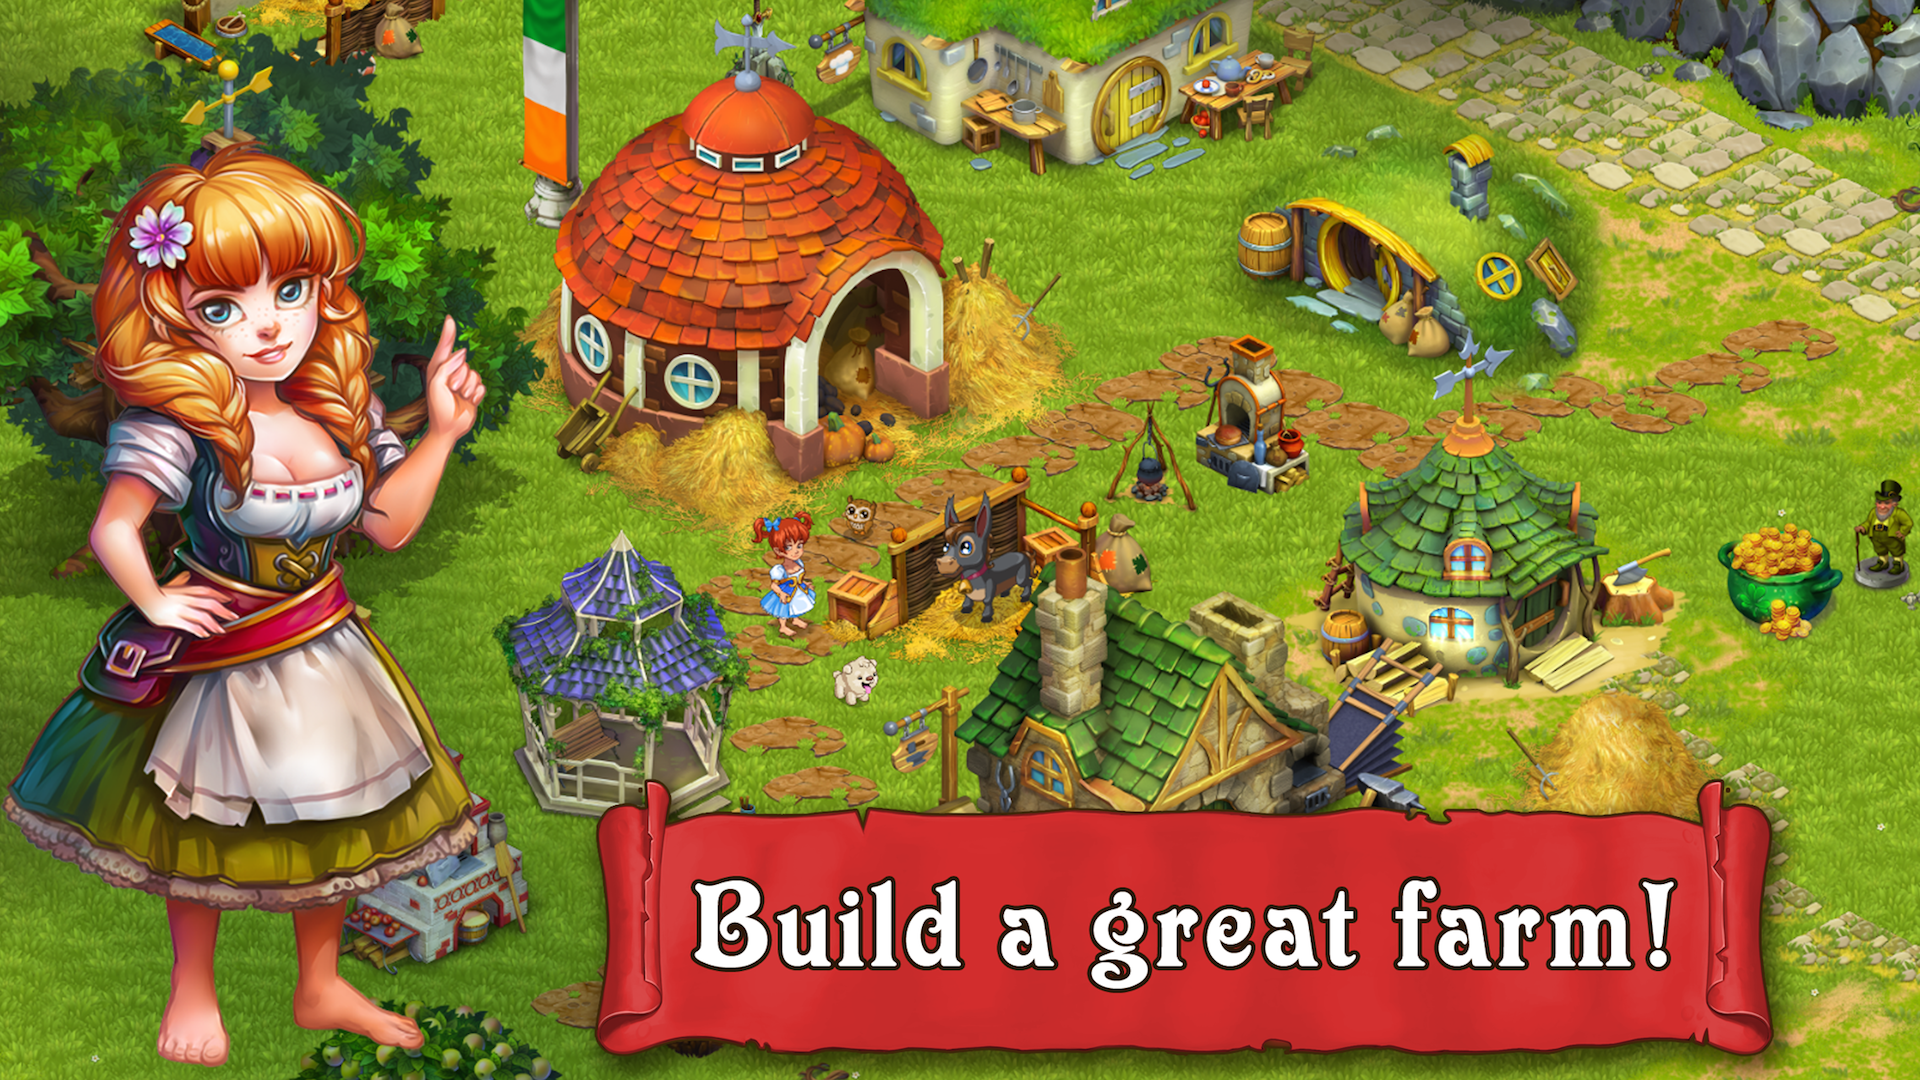 21 Cool farm game apps for Android | Android apps for me  Download